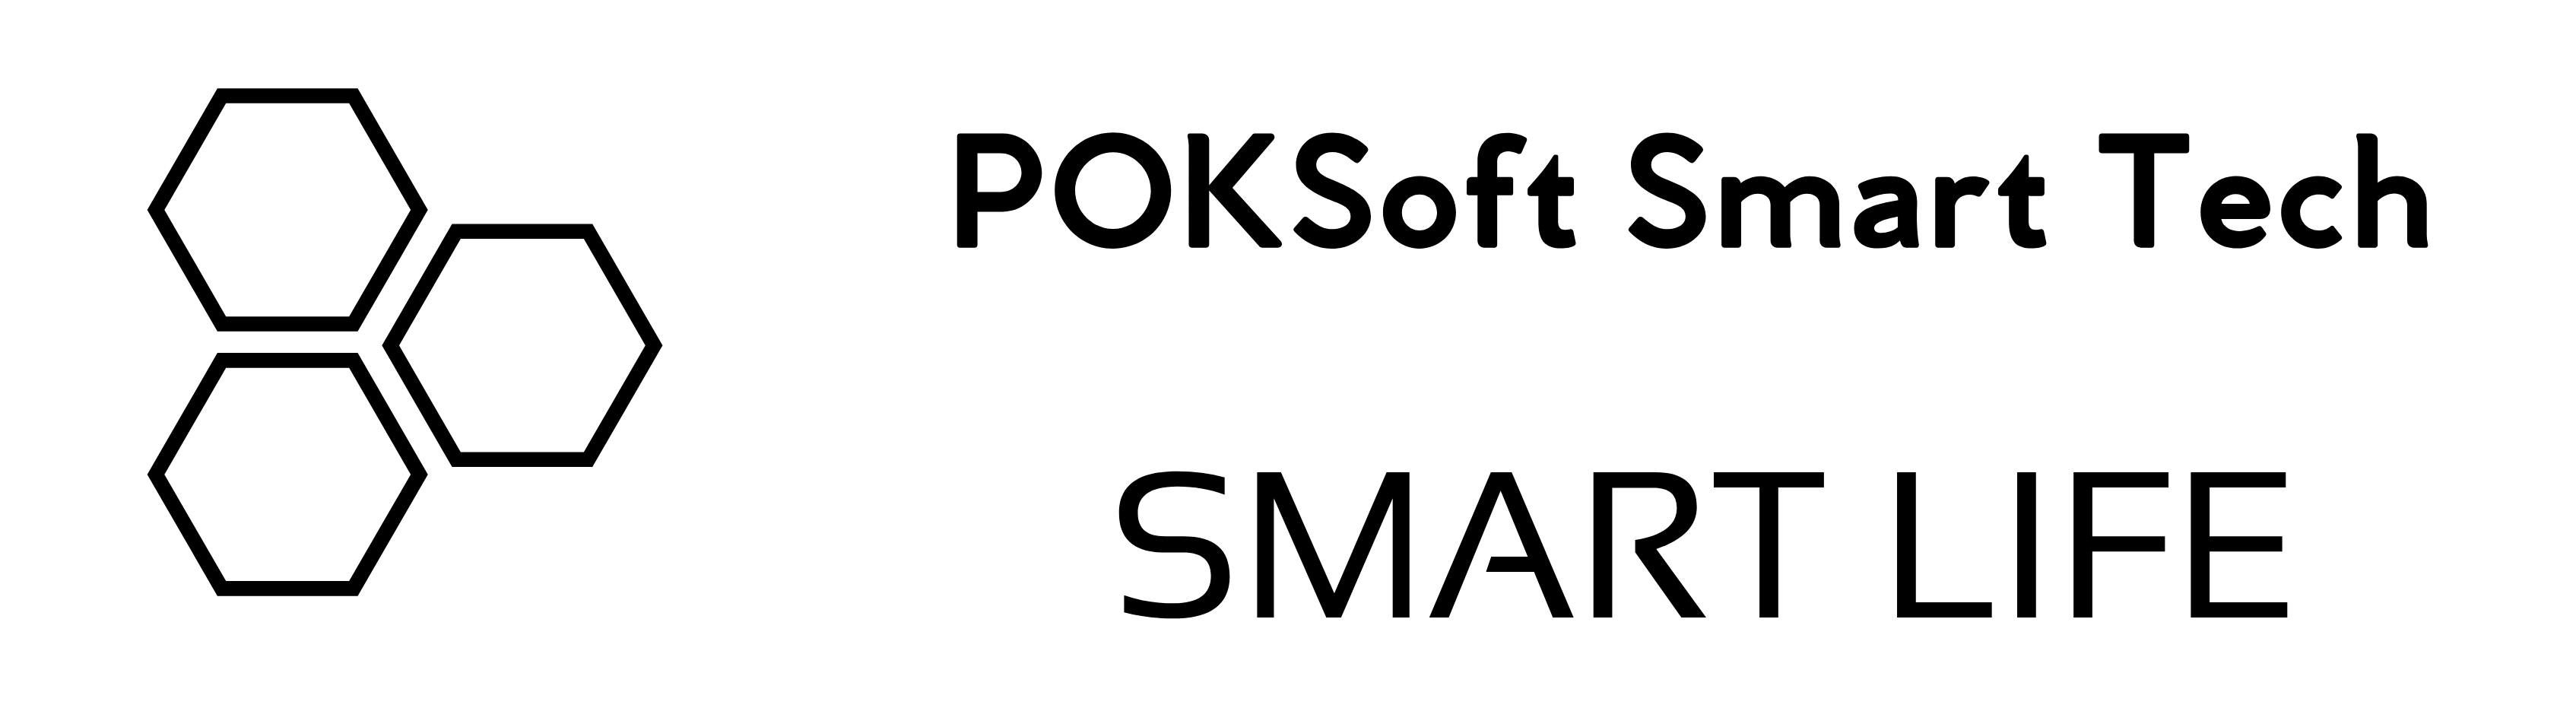 POKSoft Smart Tech